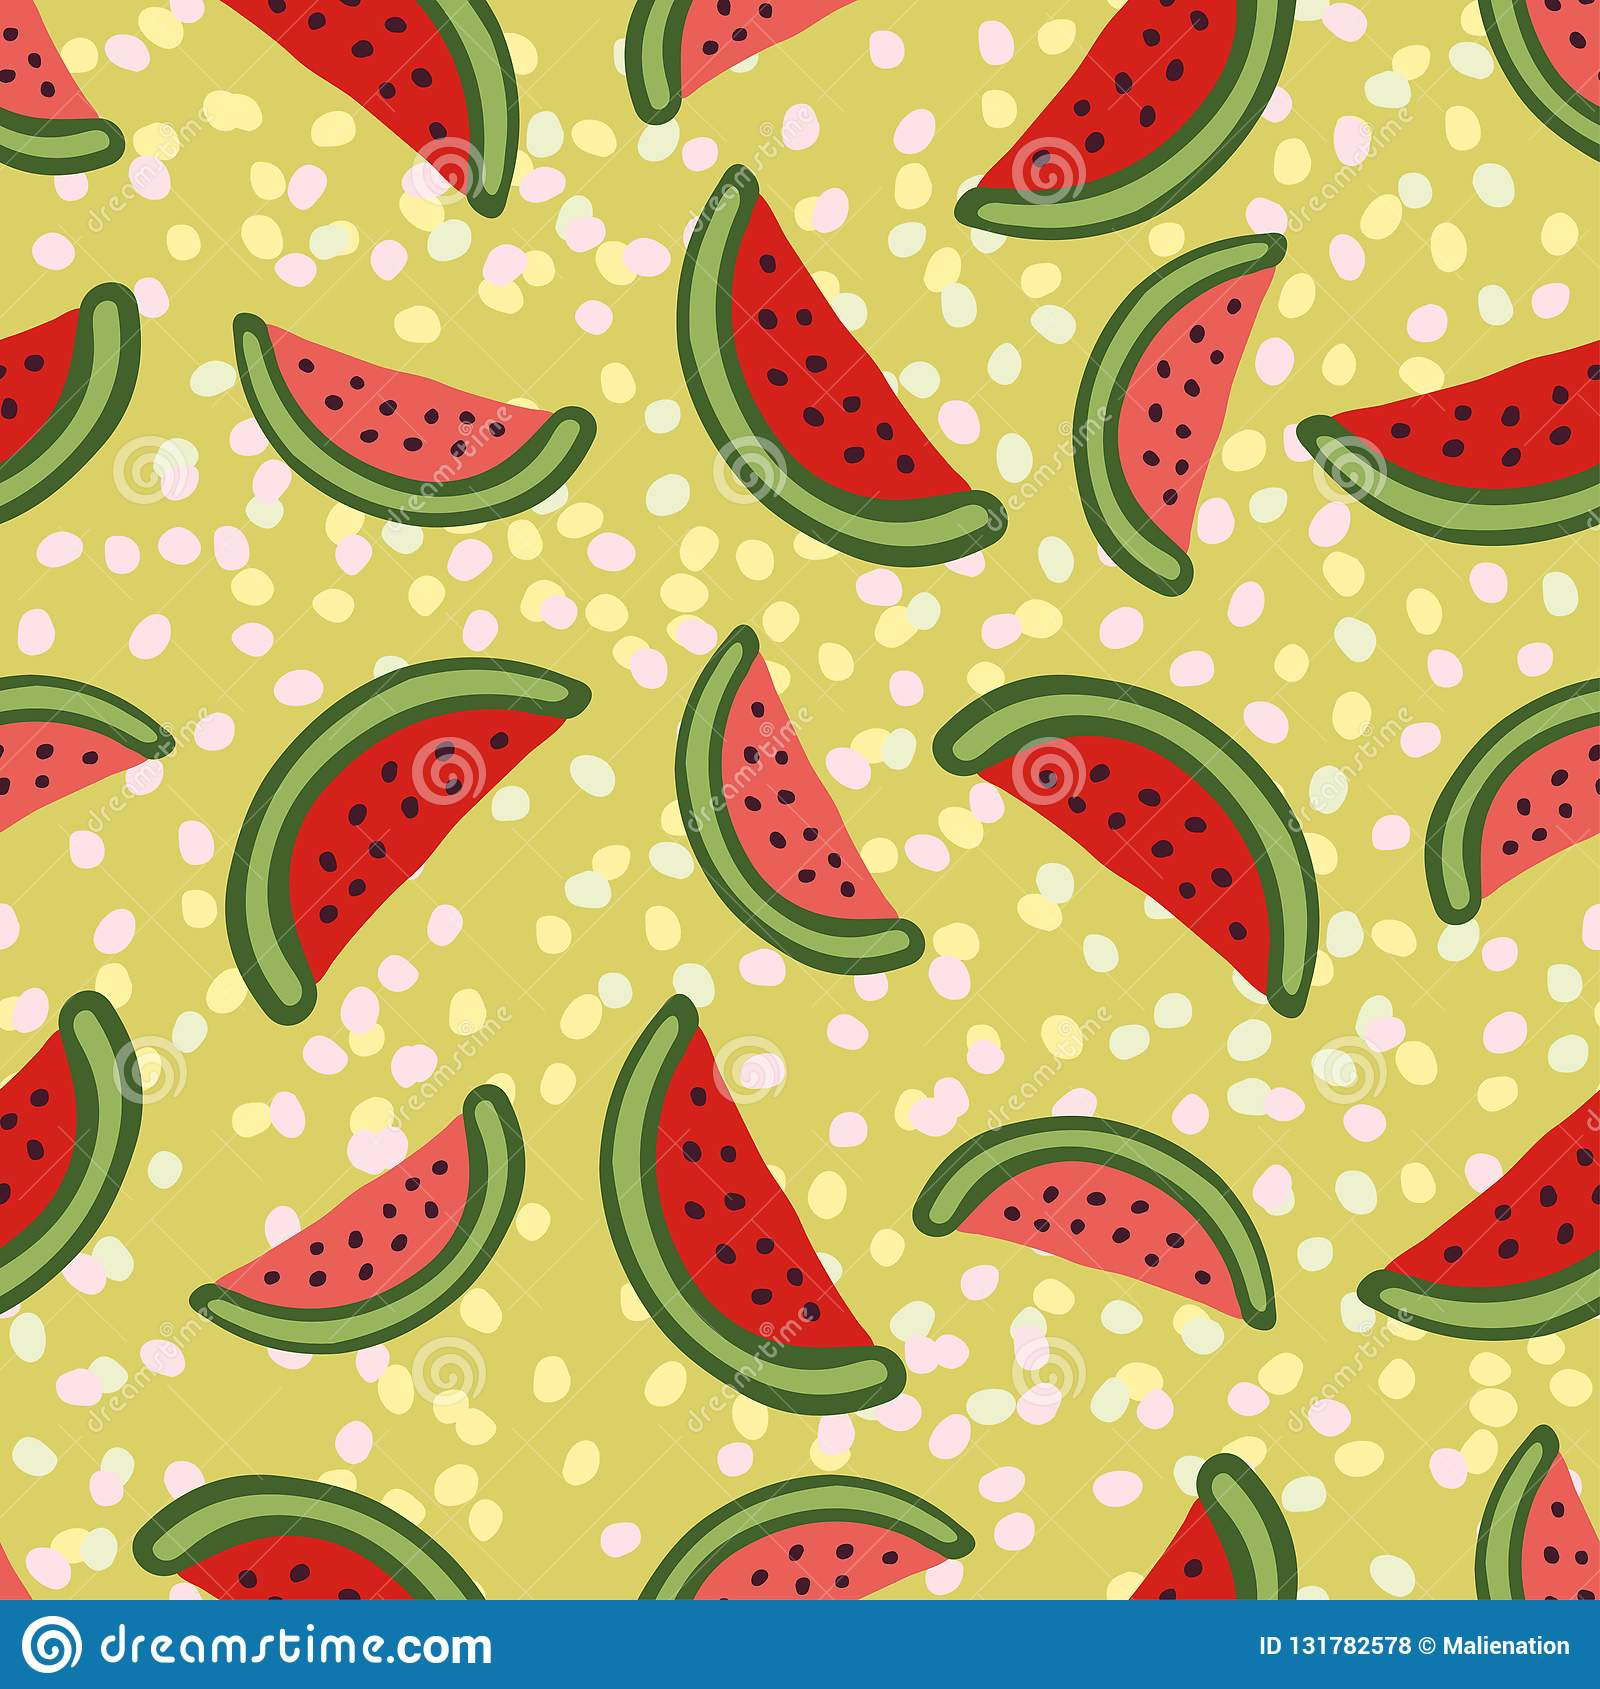 Watermelon seamless pattern on green background. Modern wrapping paper and xextile print. Interior decor and baby wallpaper pattern design